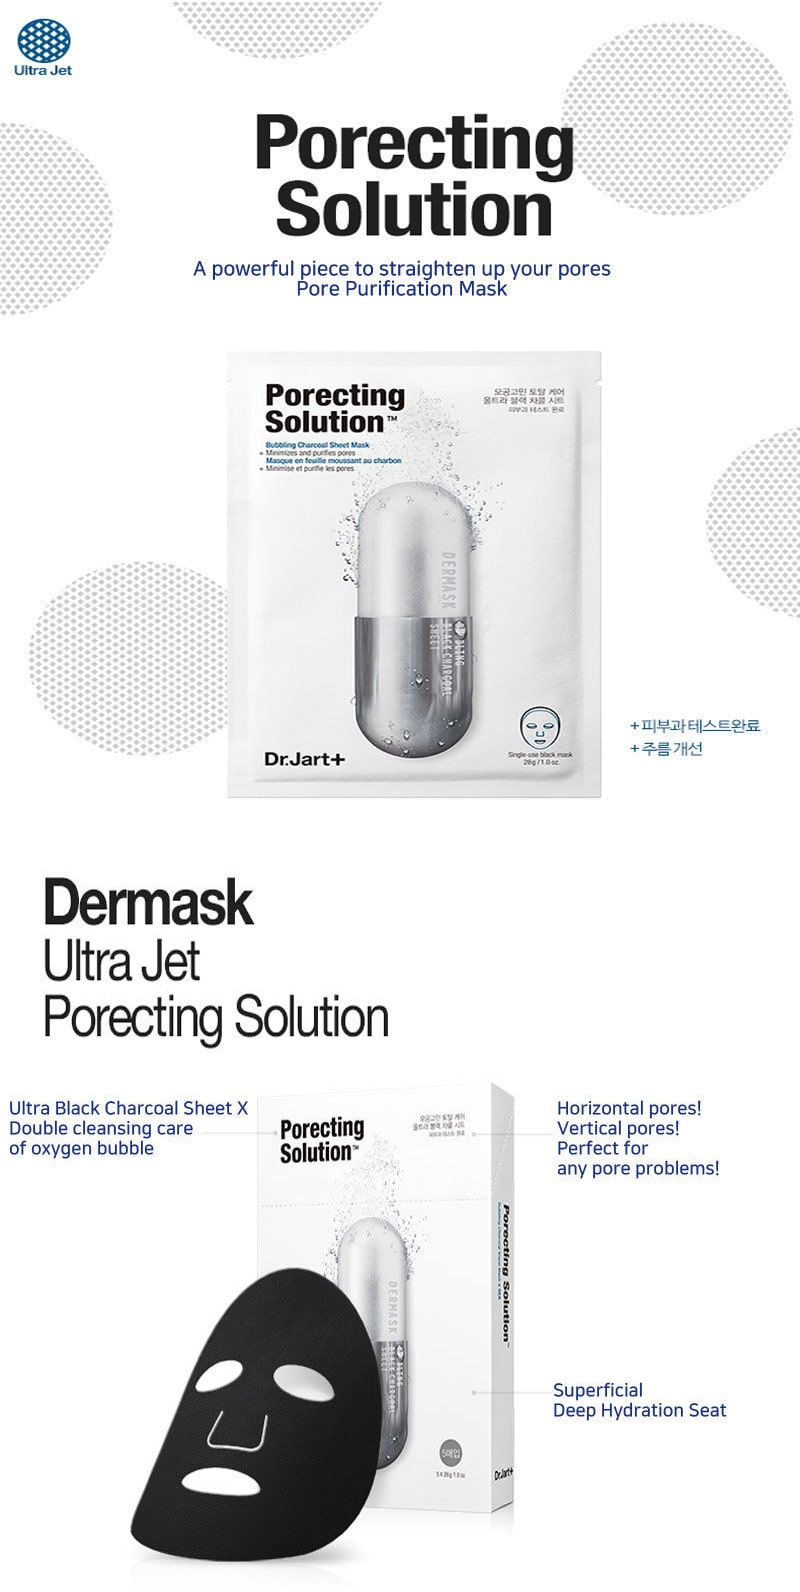 Dr.Jart+ Dermask Water Ultra Jet Porecting Solution Mask 5 Sheets